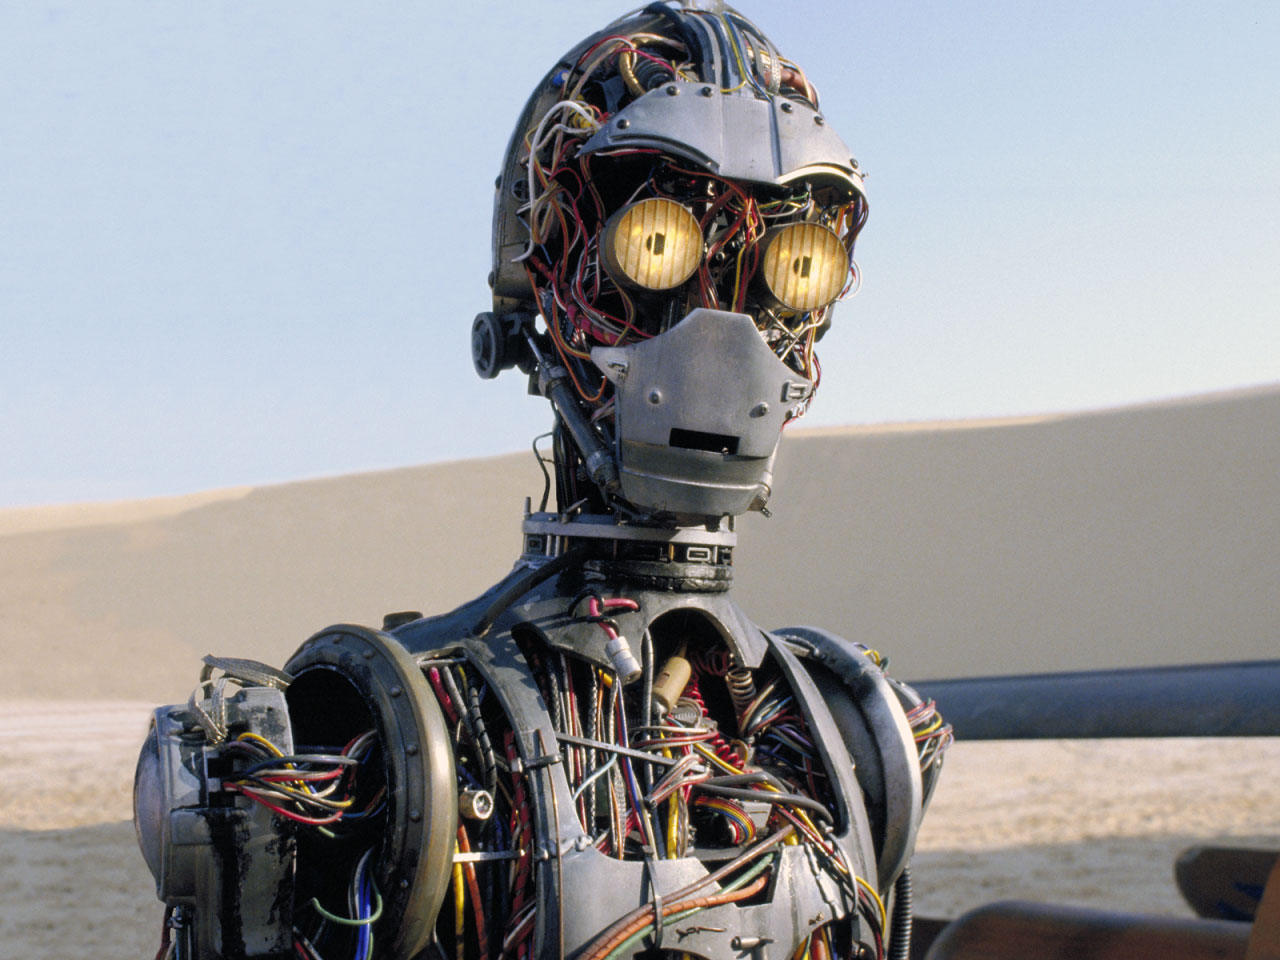 C3-PO dans Star Wars, Episode I, La menace fantôme.